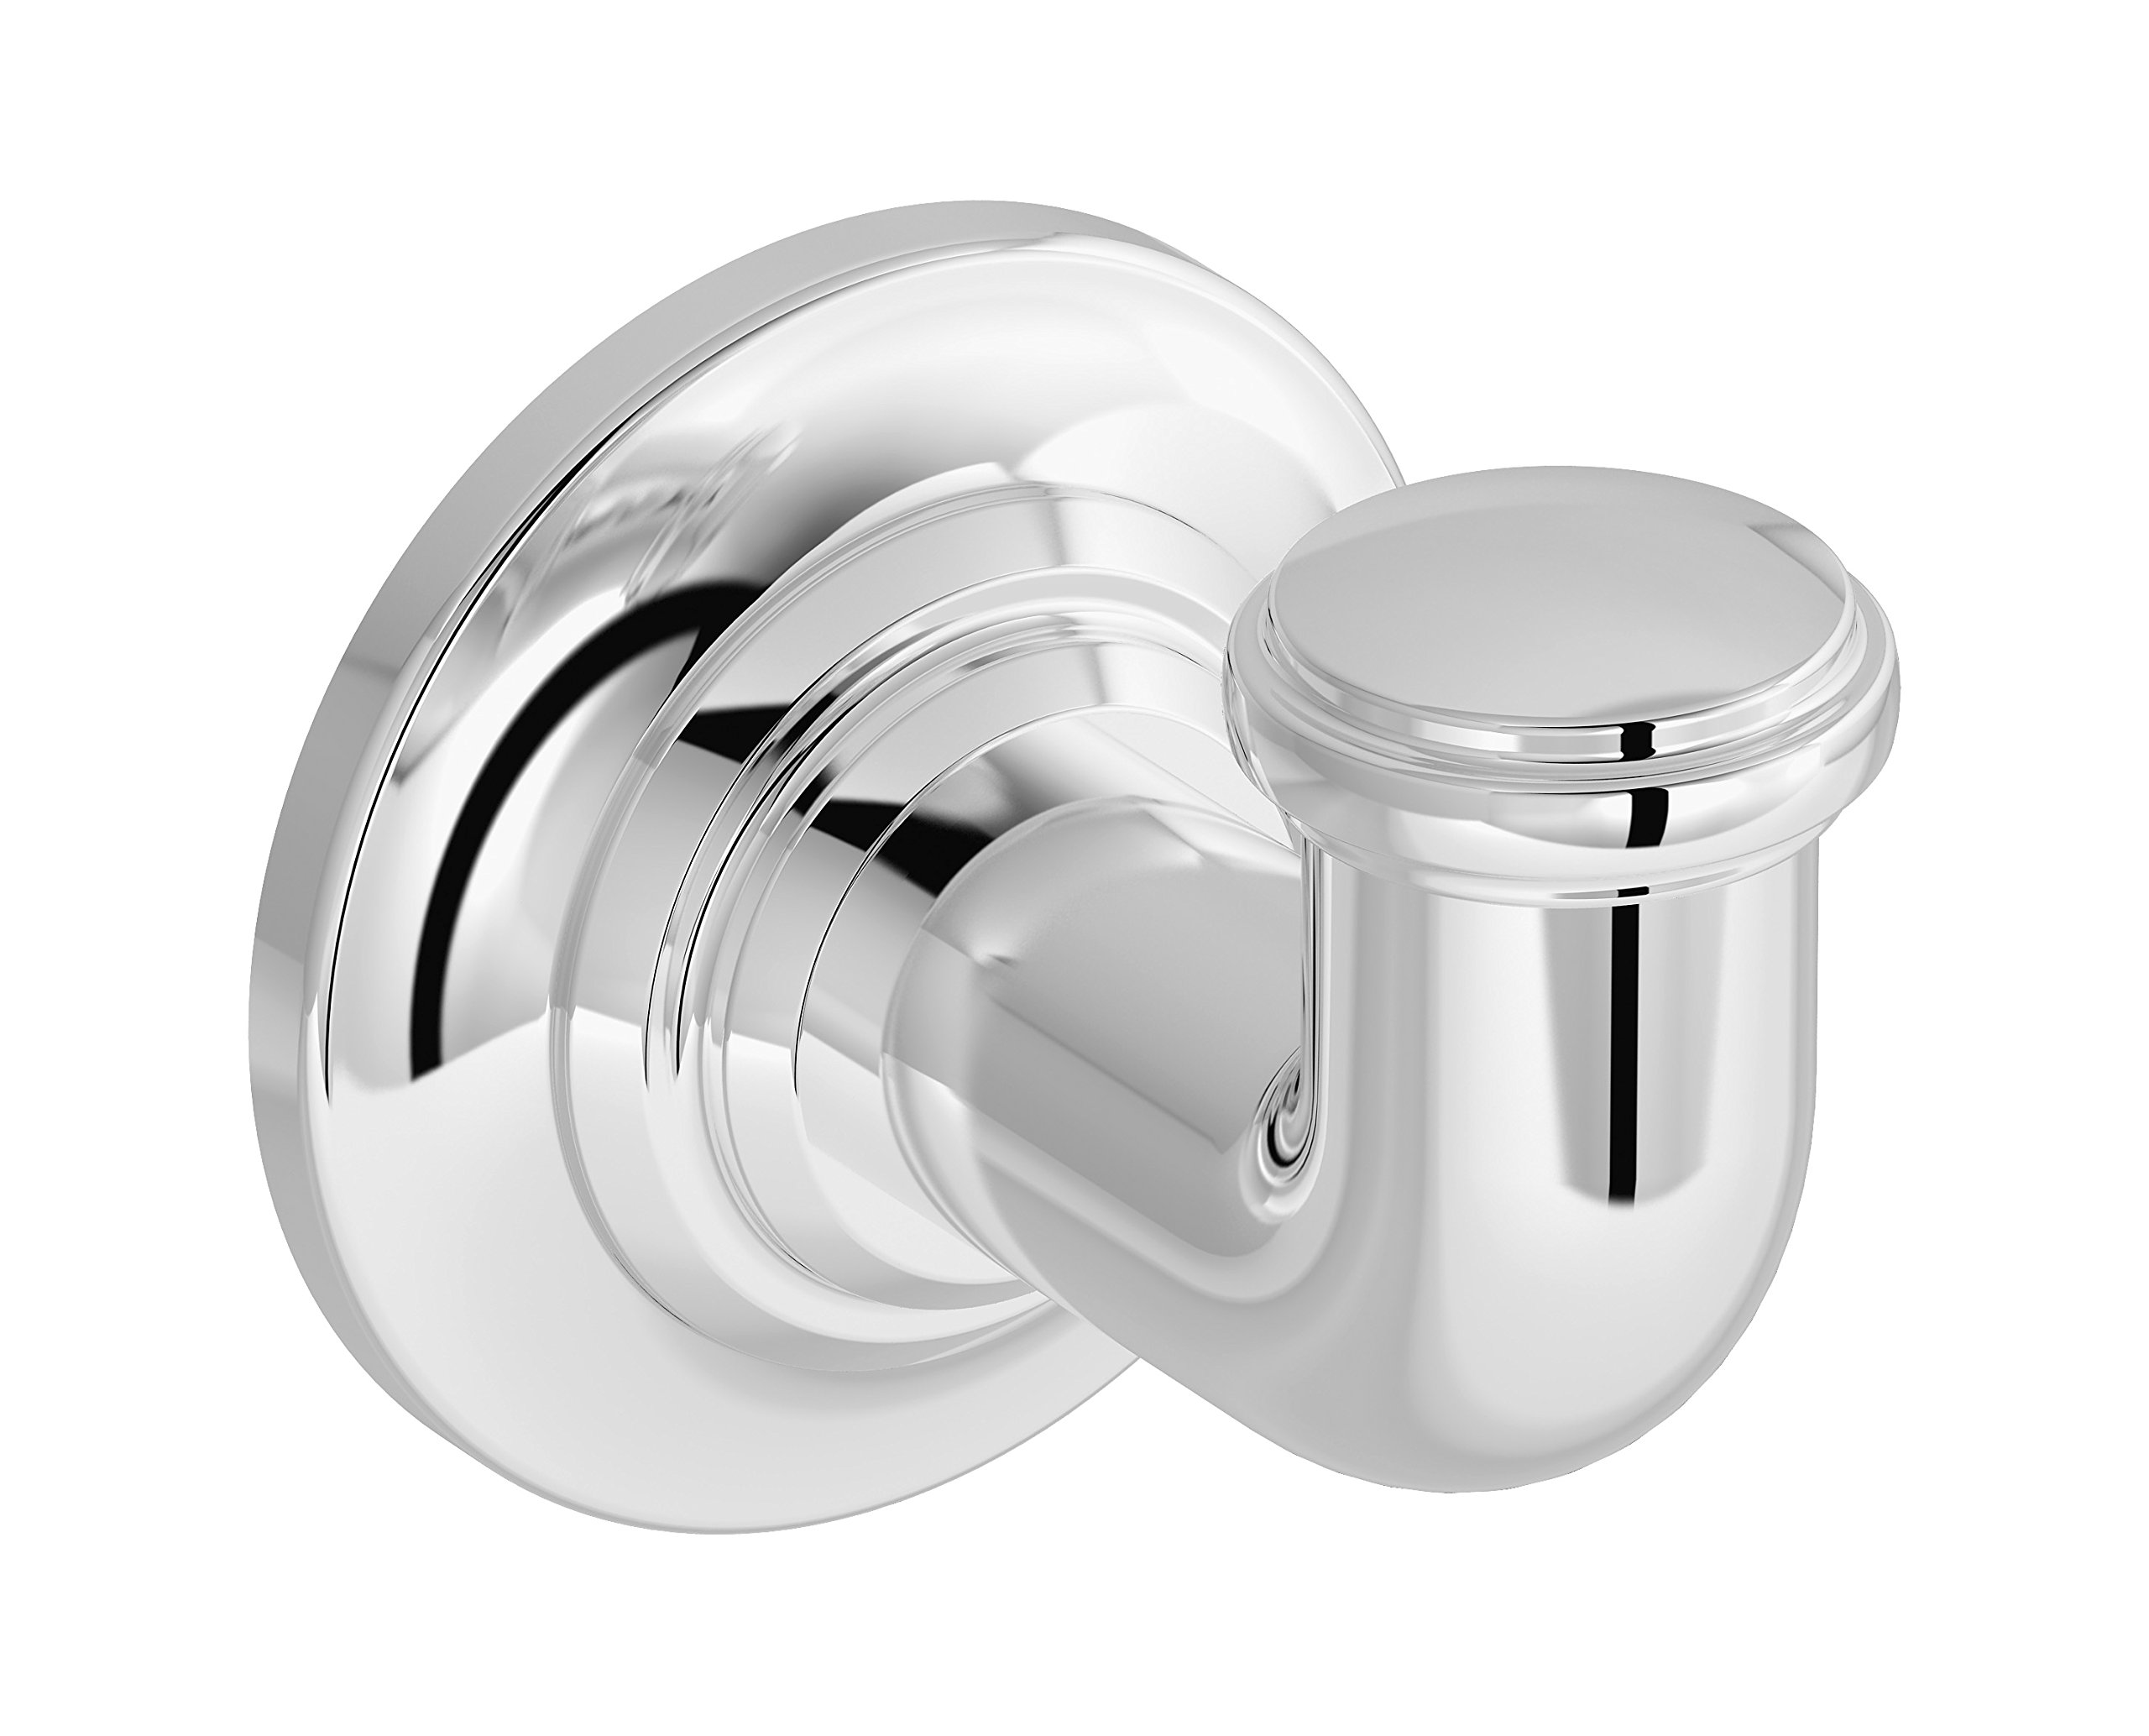 Symmons 513RH Winslet Wall-Mounted Robe Hook in Polished Chrome